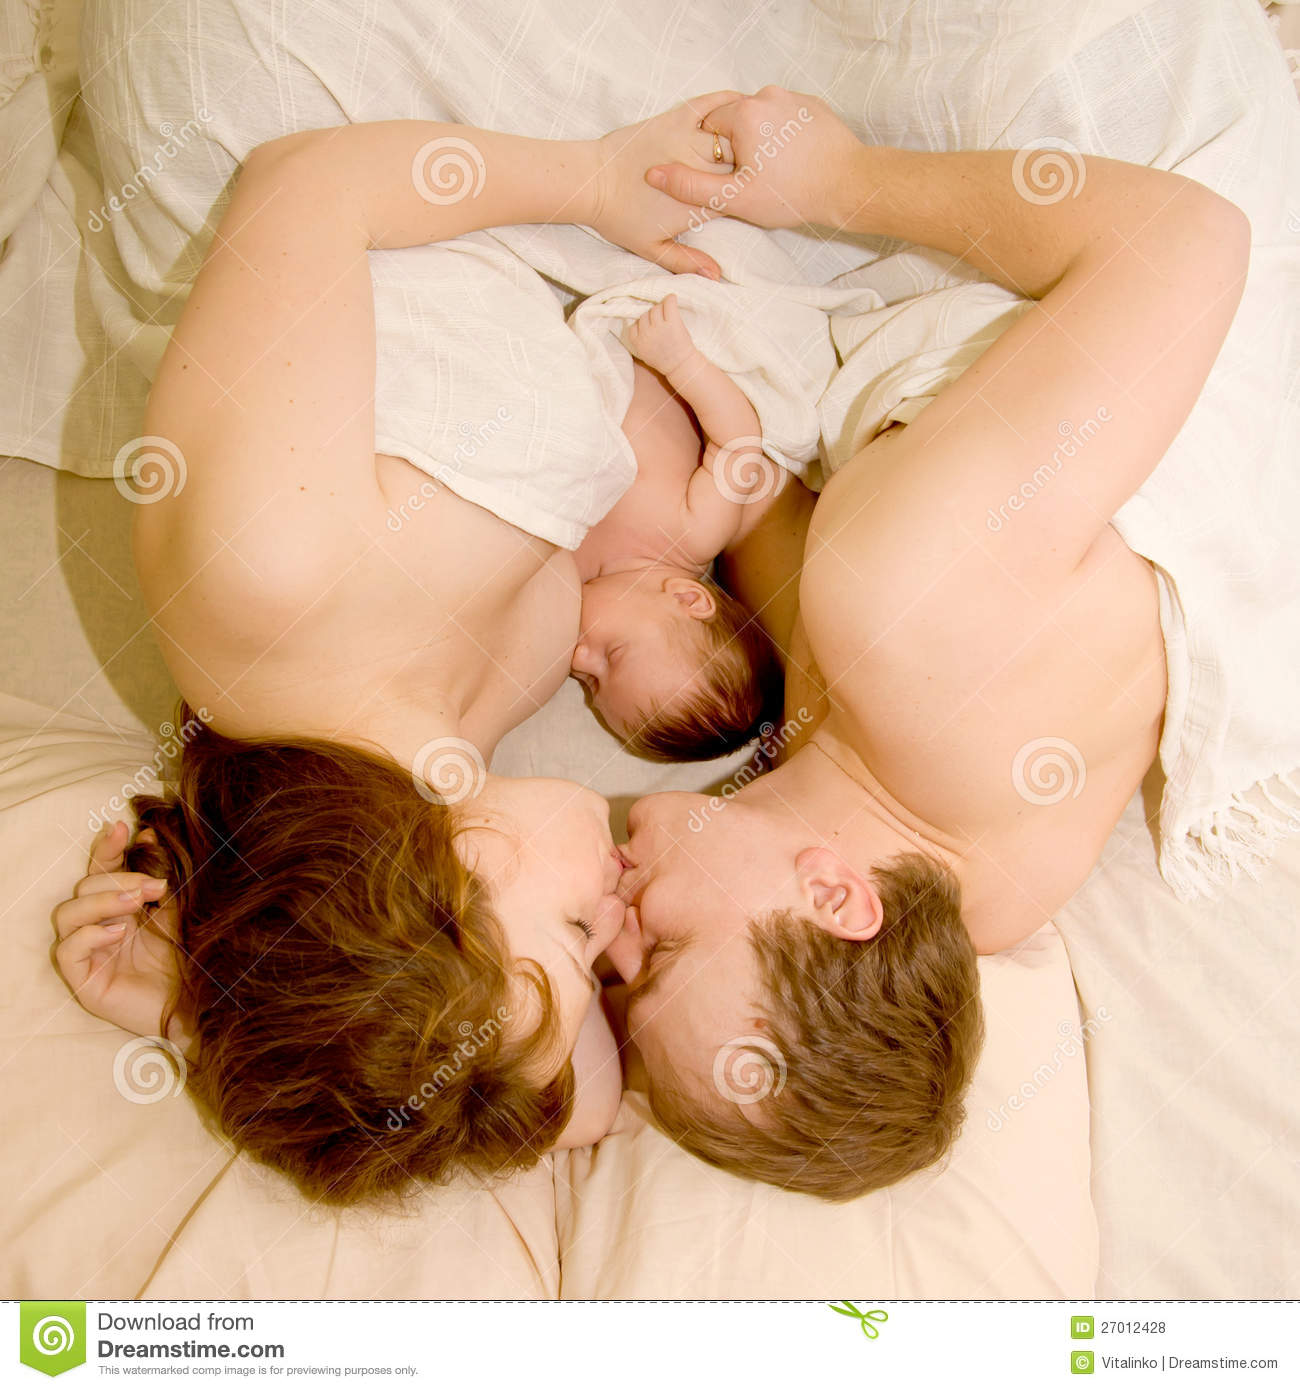 Nice family sleeping together in a white bed. Mother, father and ...: www.dreamstime.com/royalty-free-stock-photos-nice-family-sleeping...